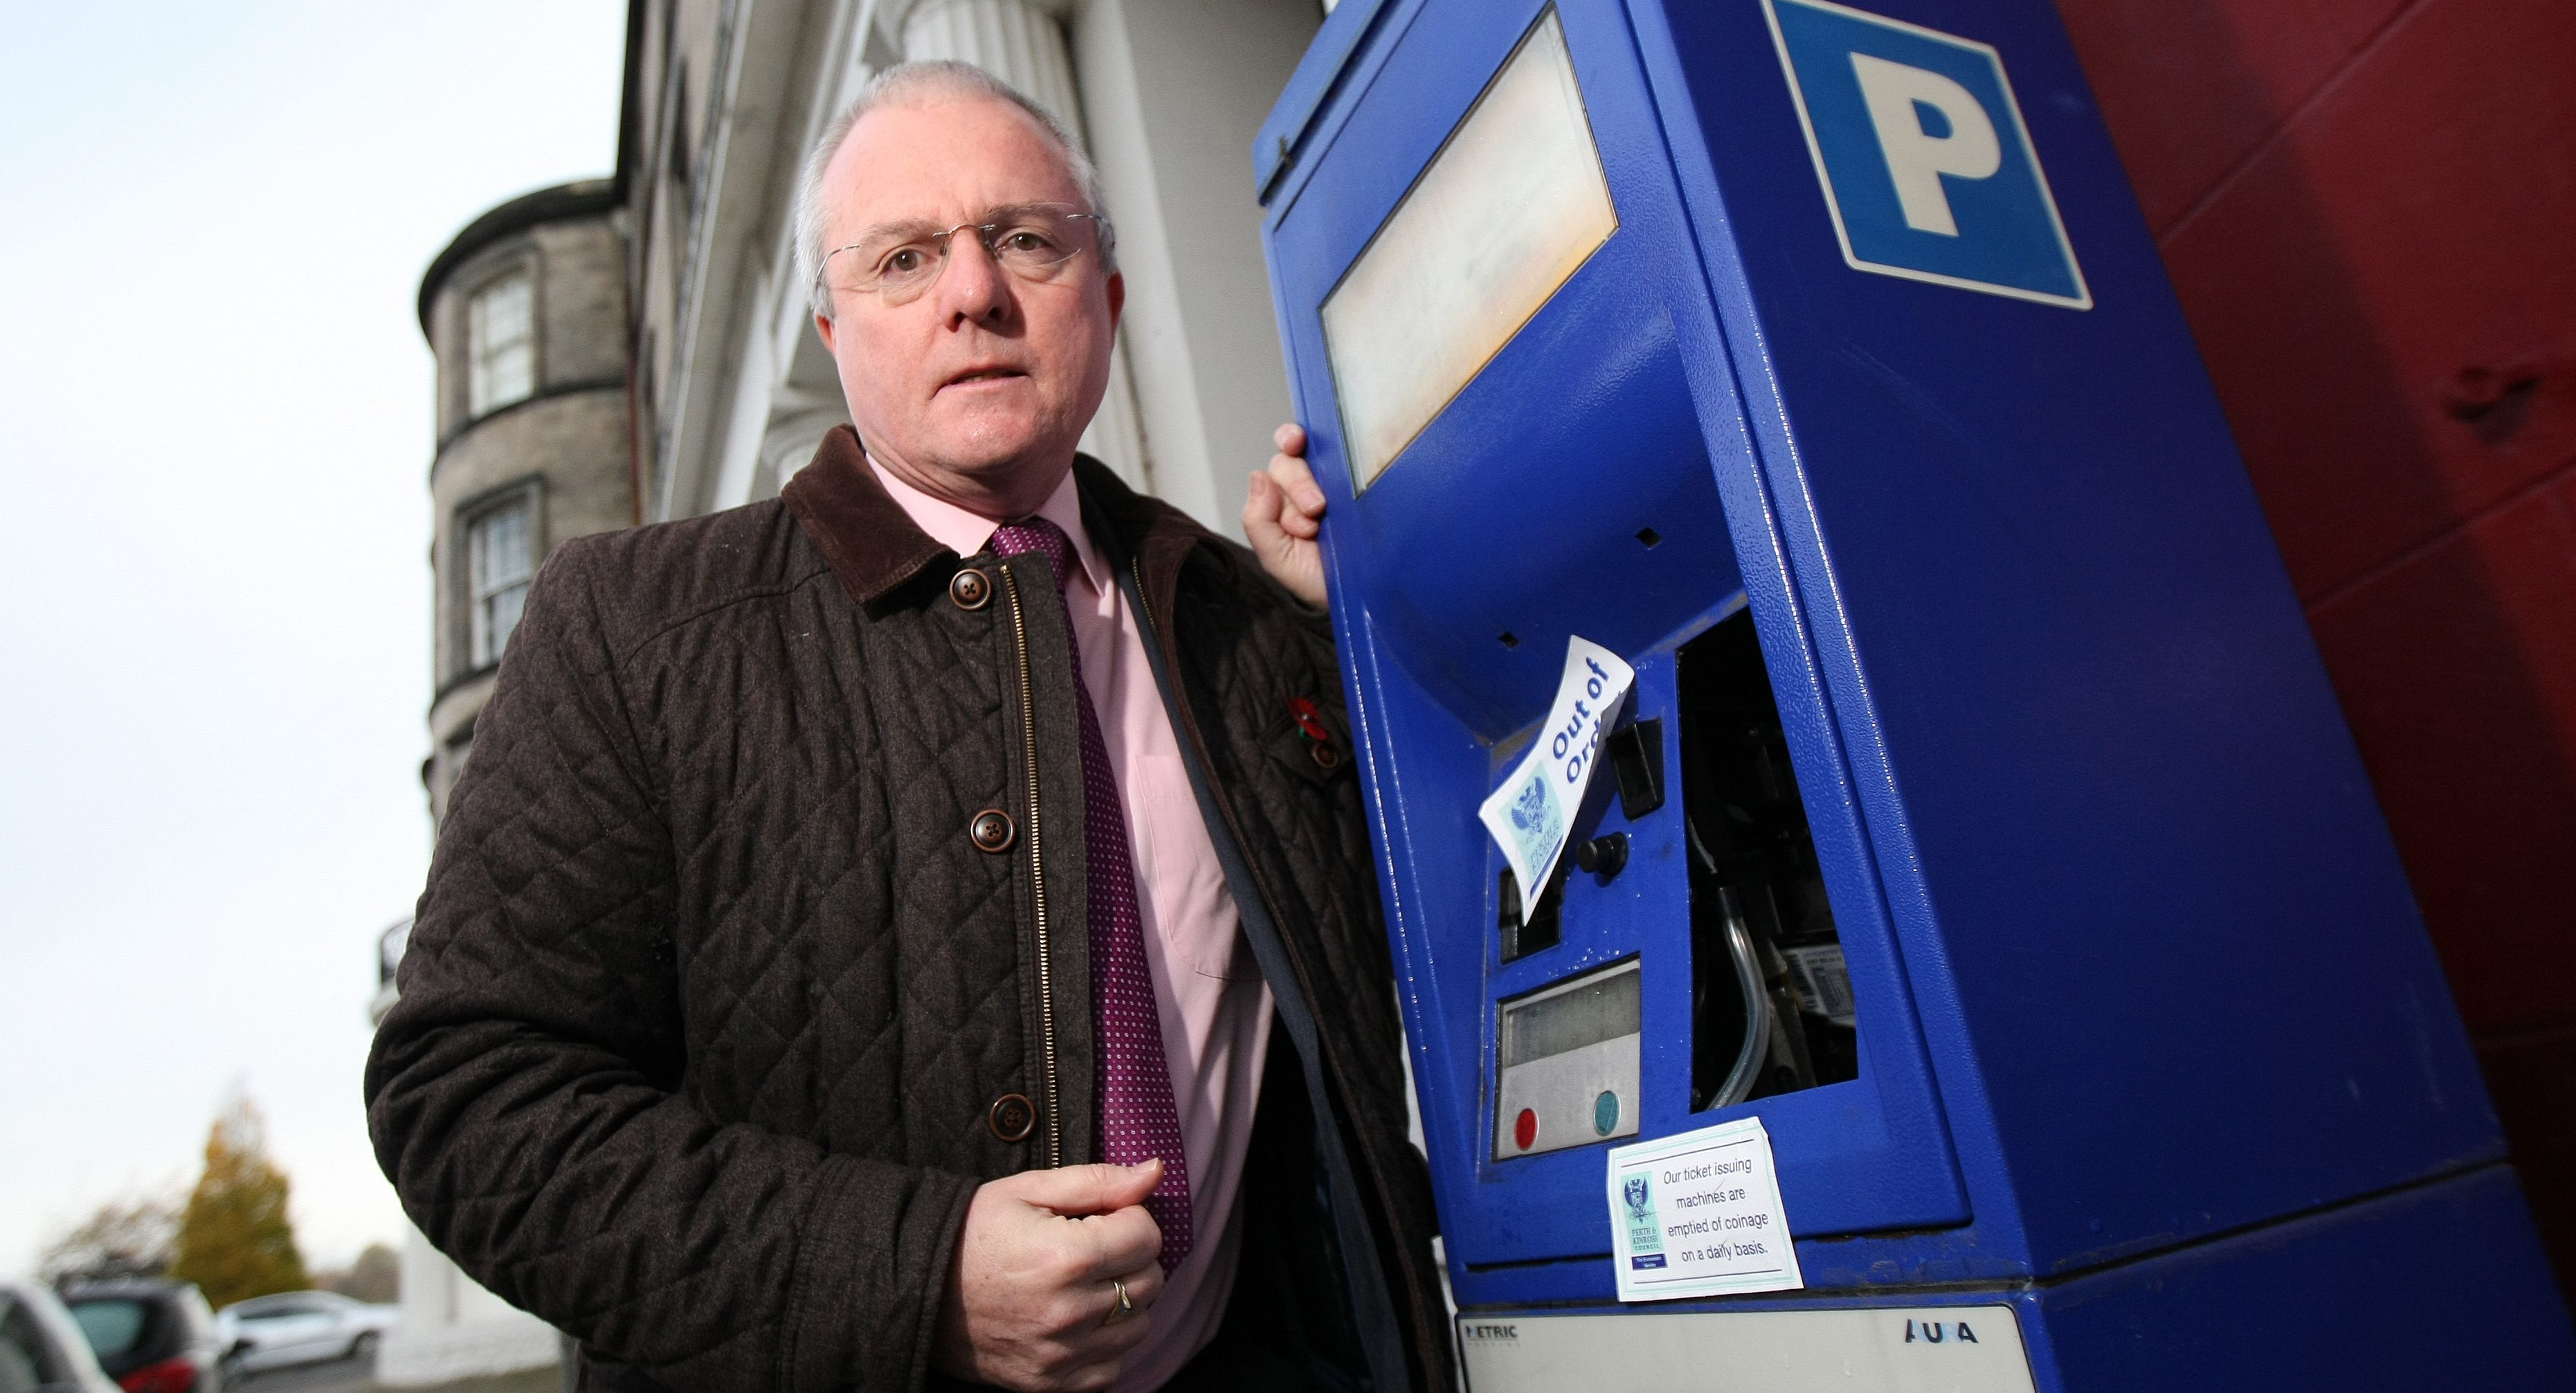 Councillor Peter Barrett thinks the destruction may be an attempt to get at cash